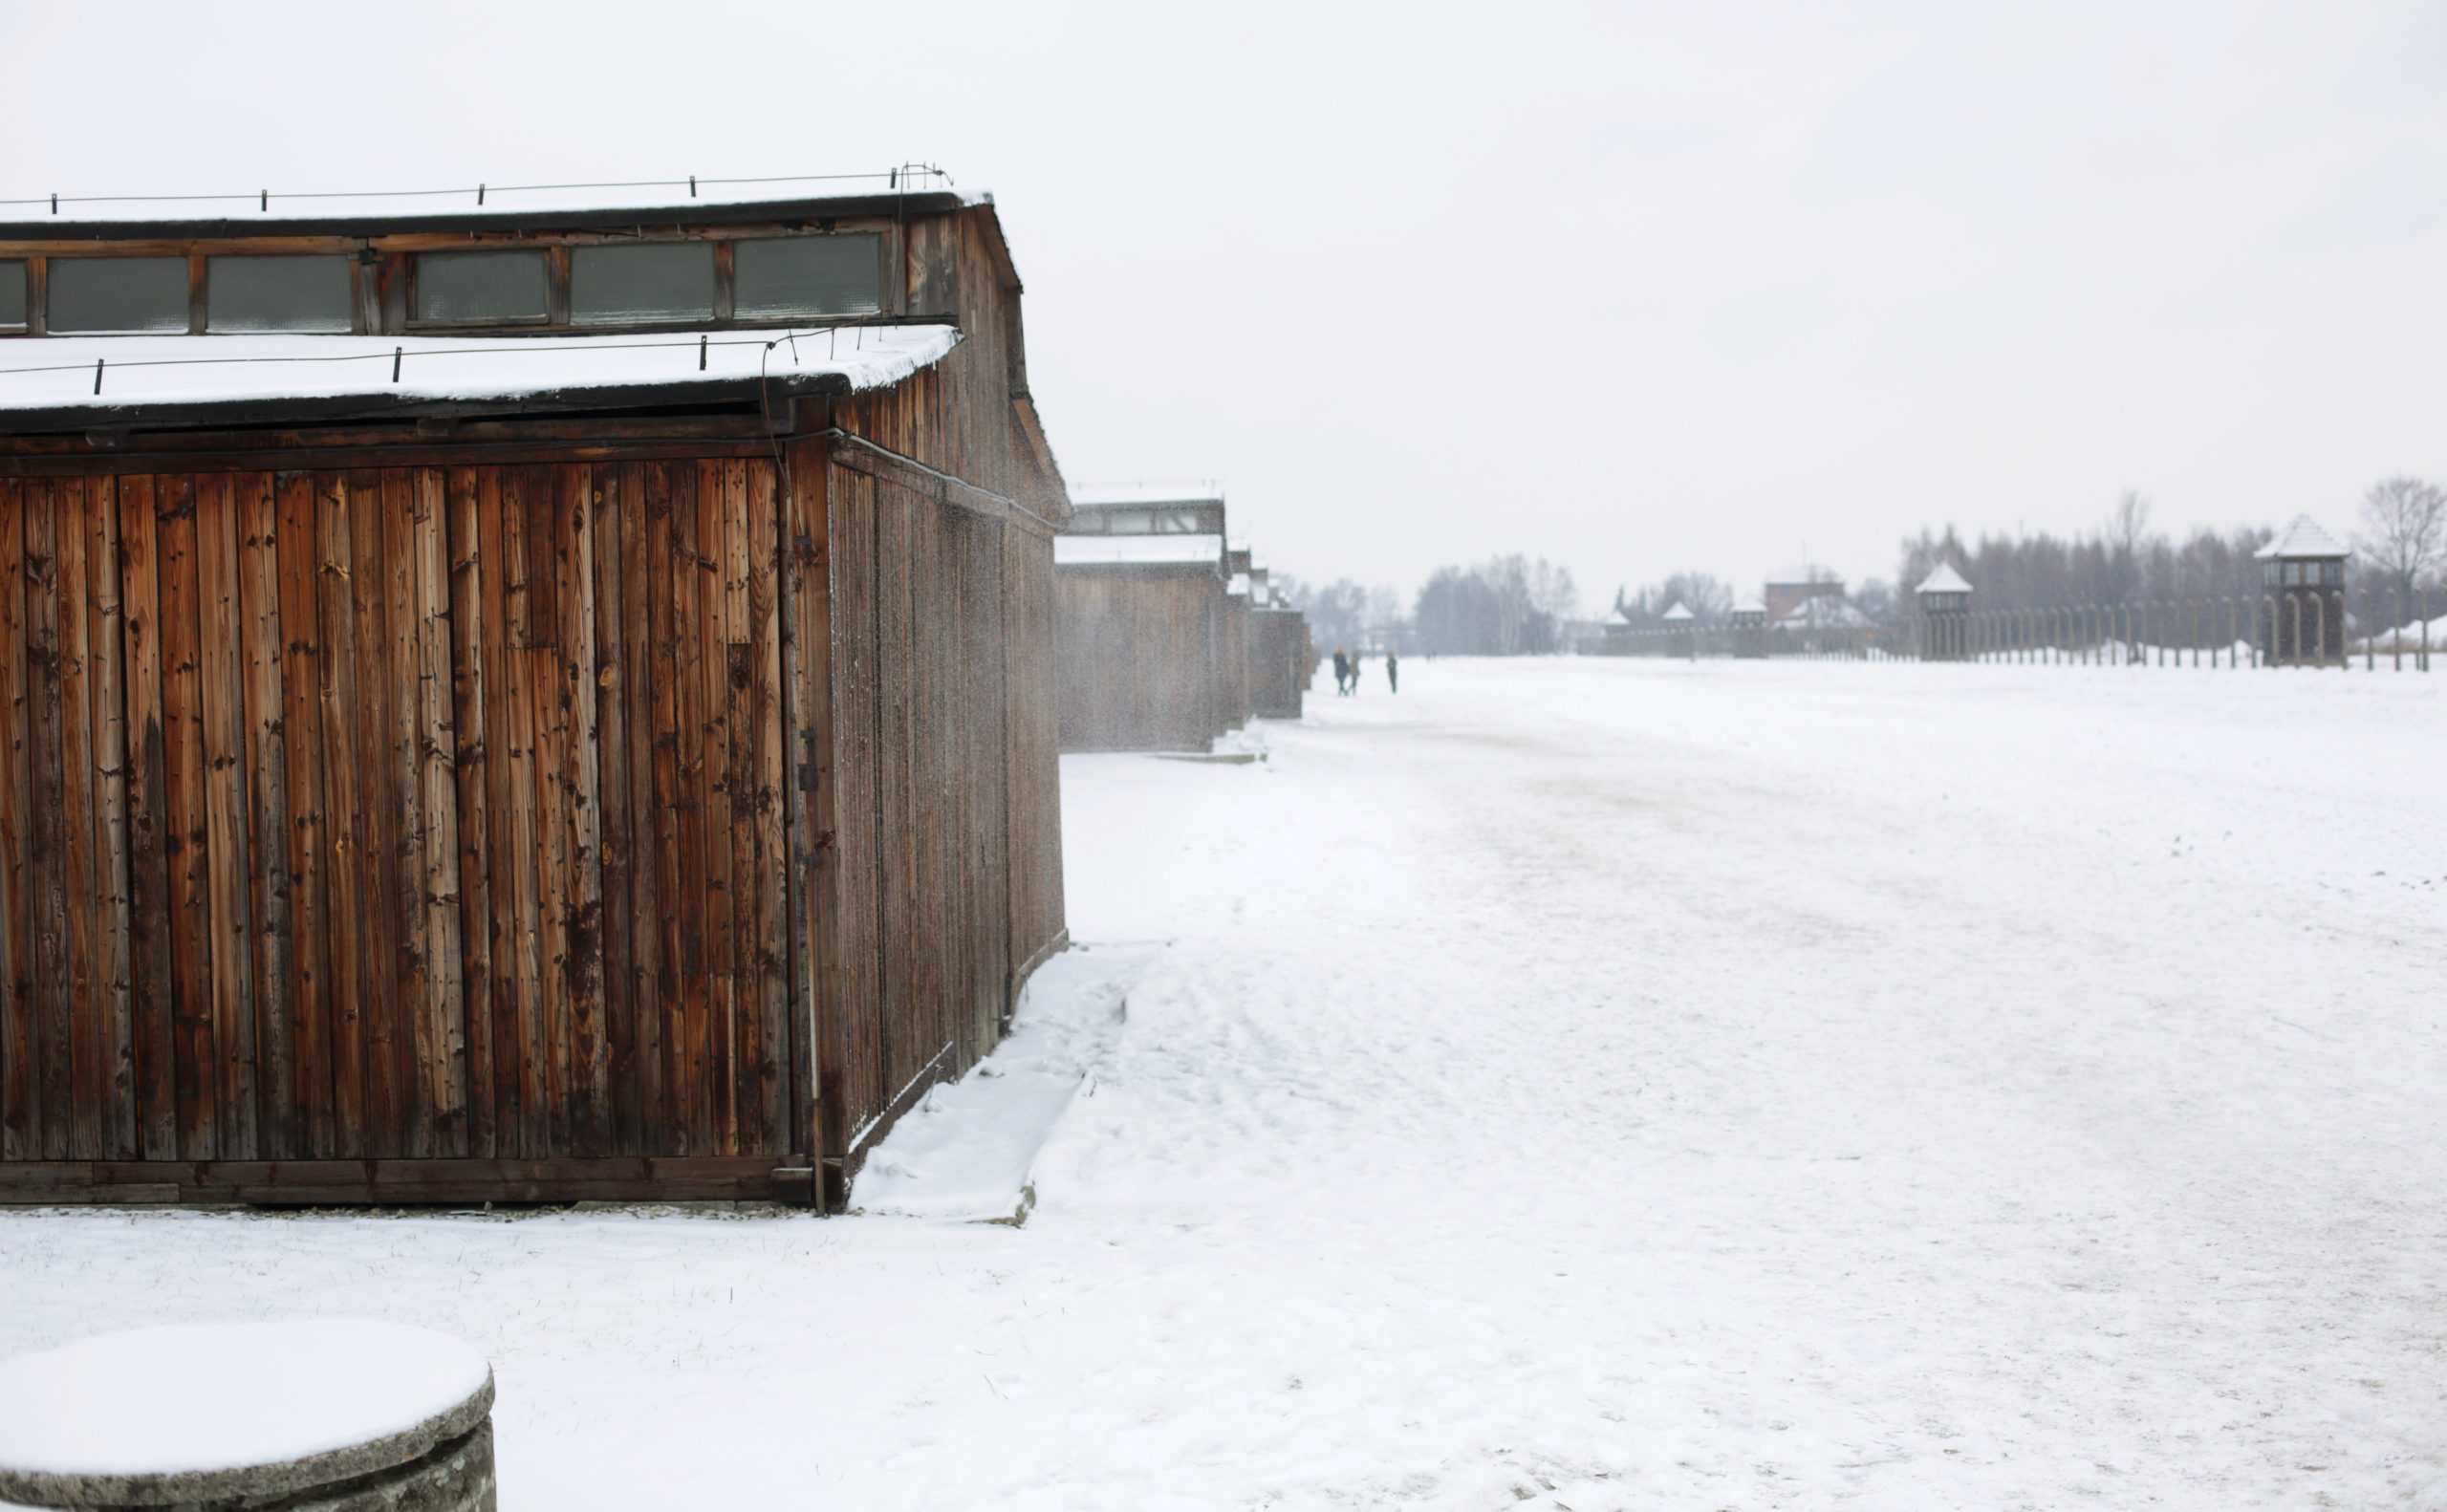 The barracks of quarantine in KL Auschwitz II-Birkenau; photo taken by Jaroslaw Praszkiewicz.